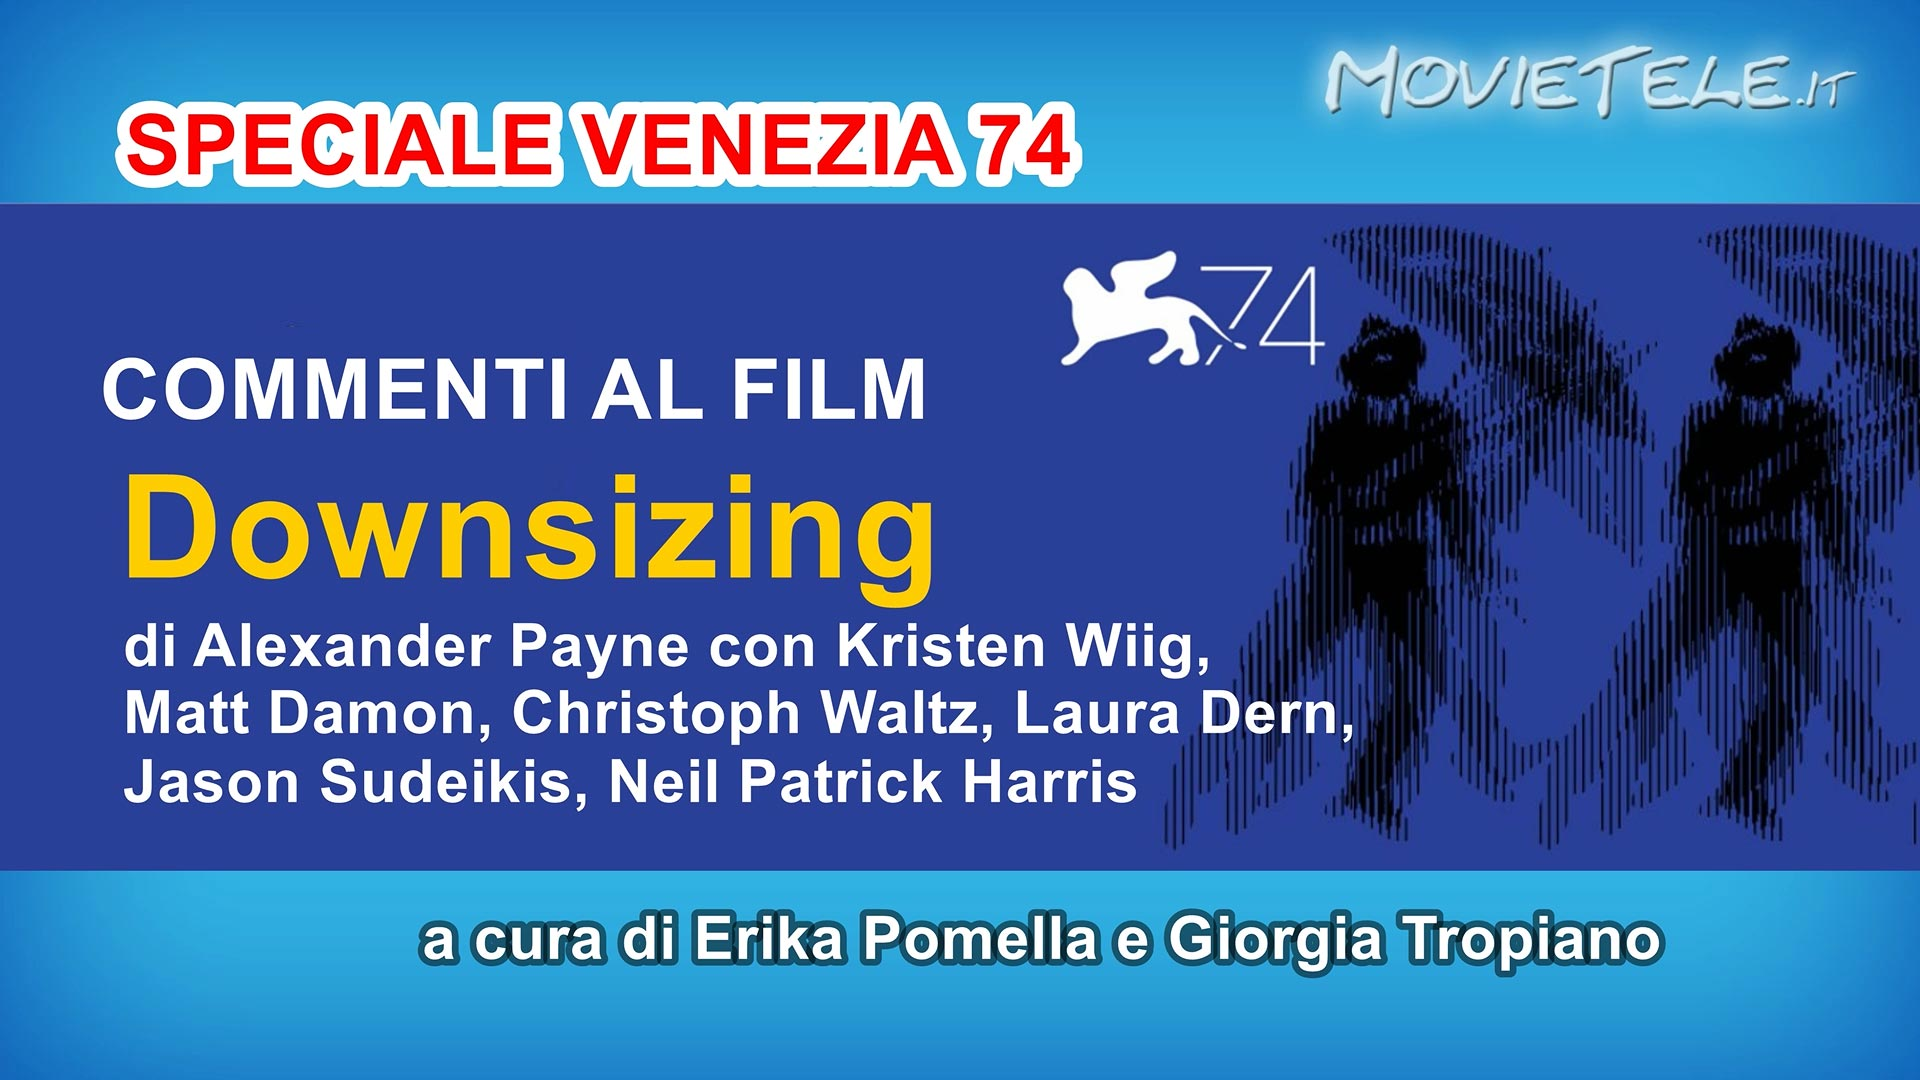 image Downsizing - Video Recensione da Venezia 74